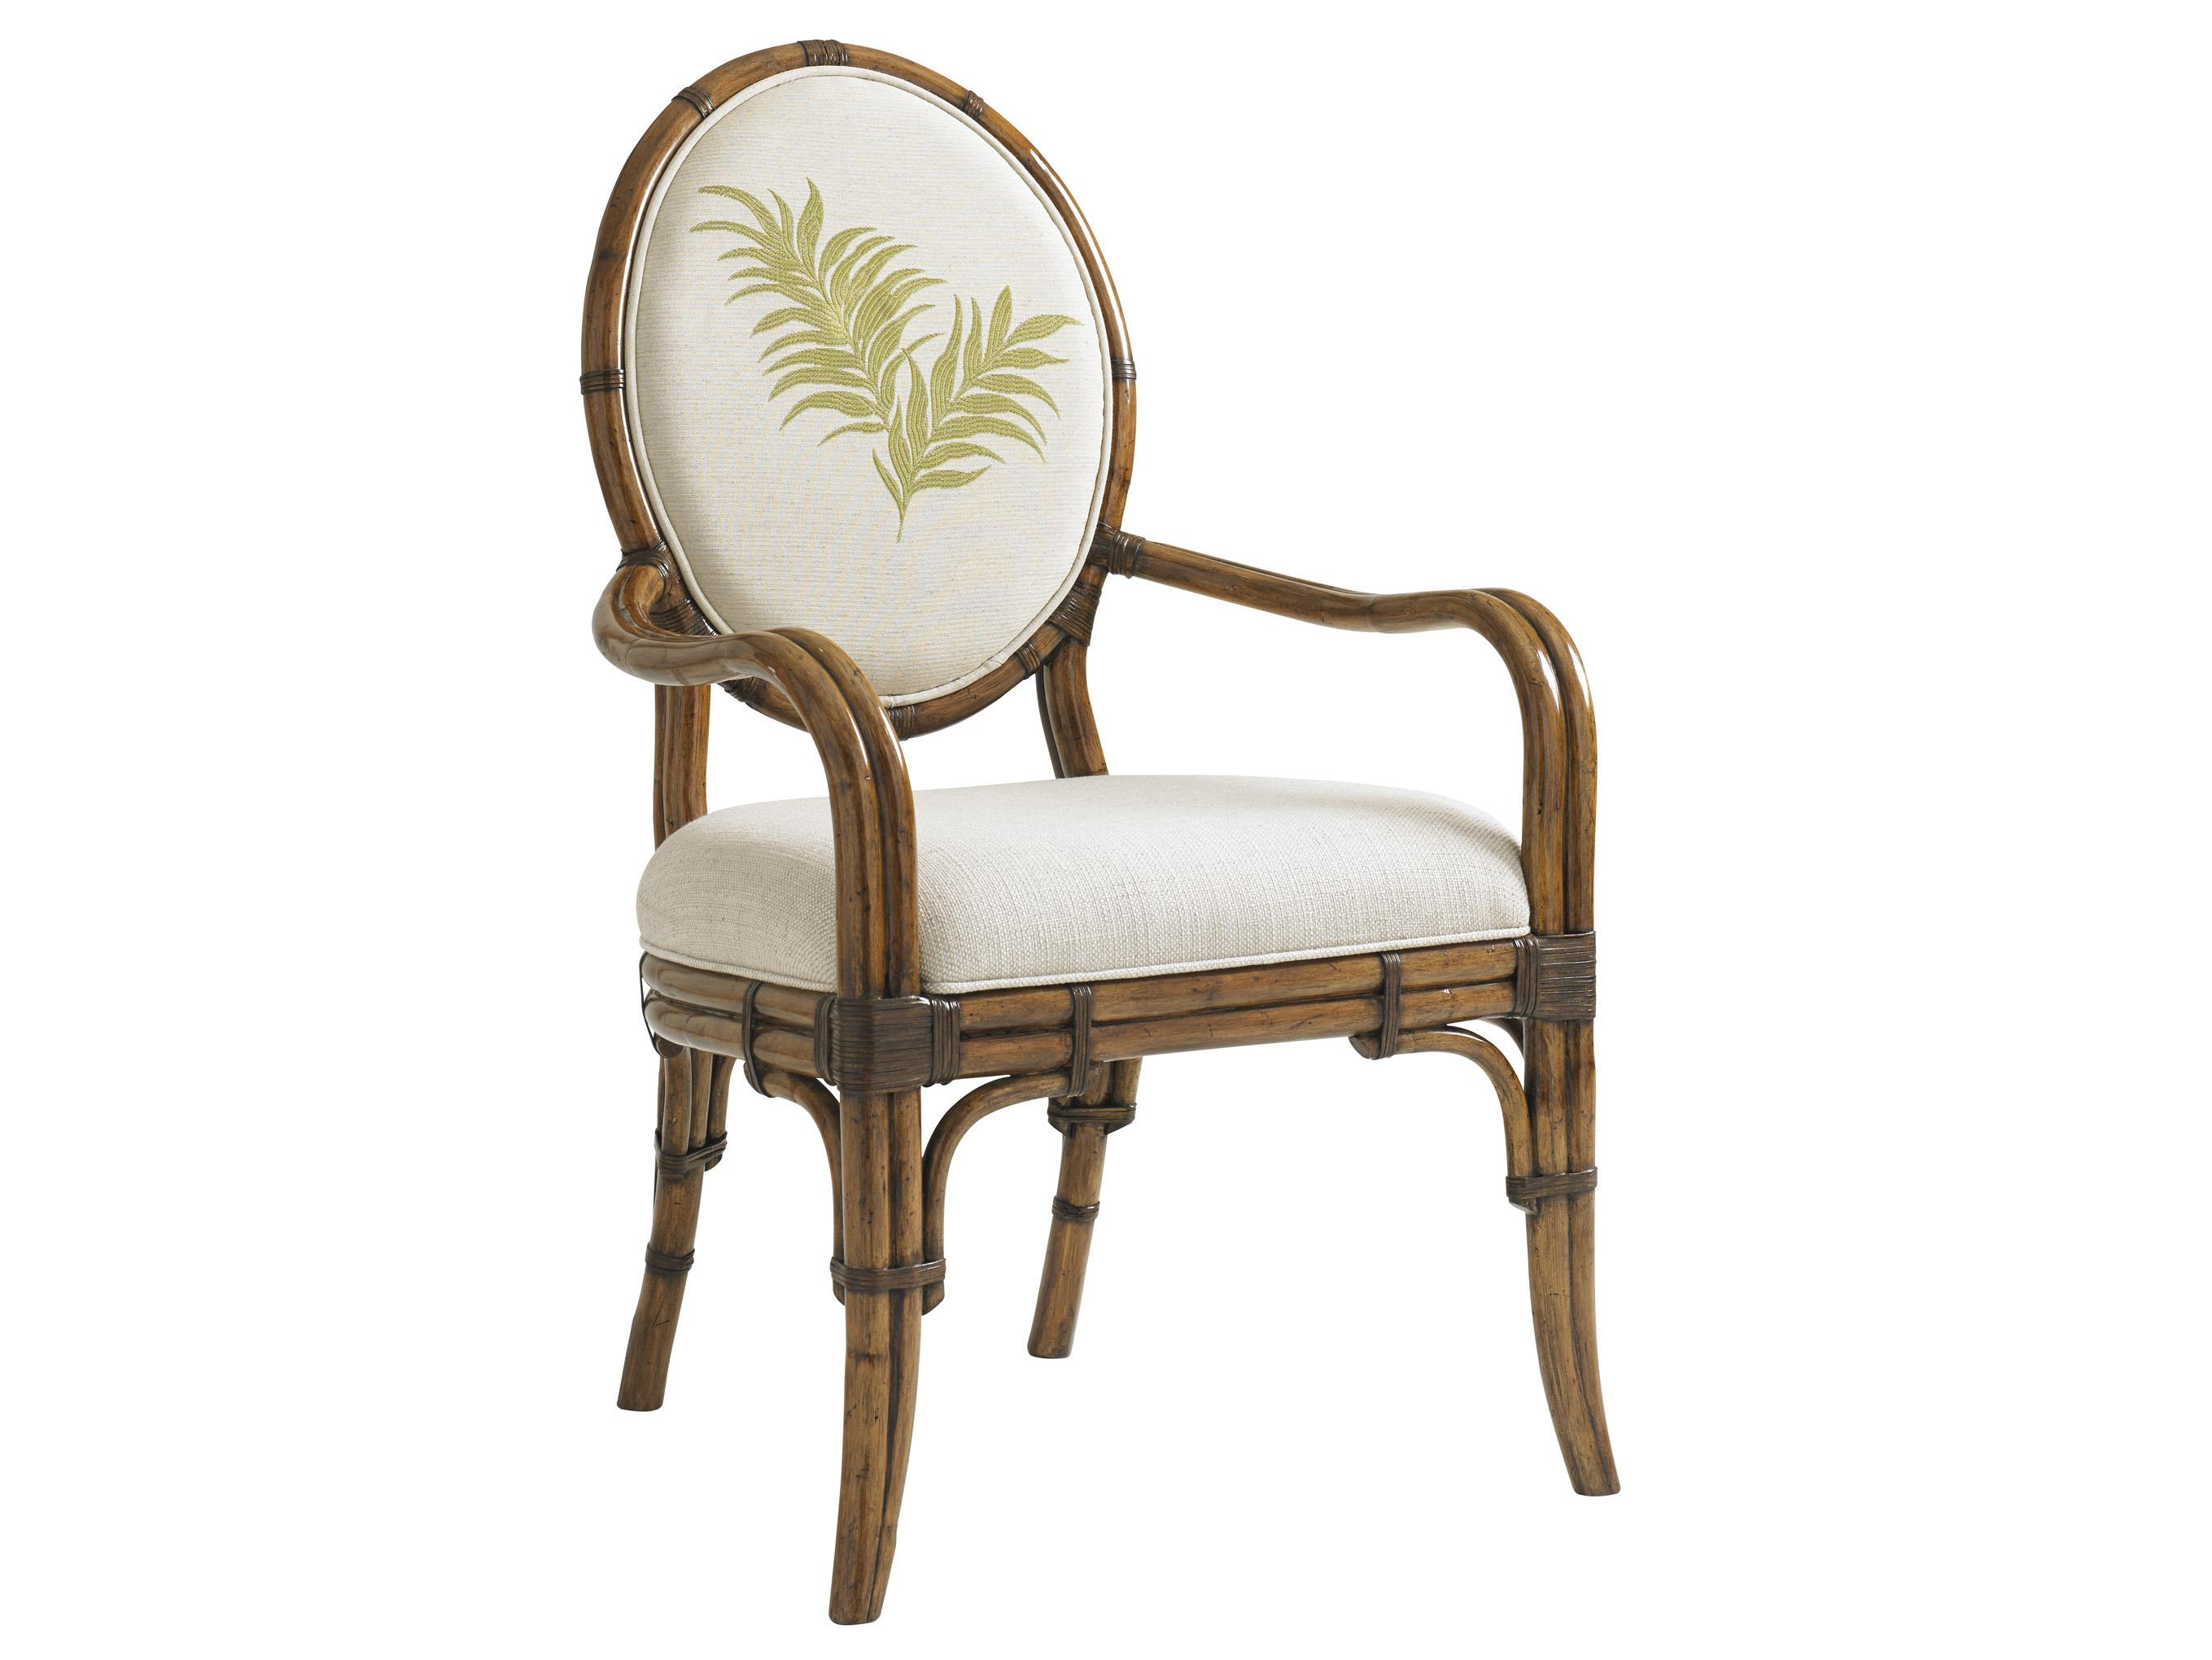 Bali Hai Quickship Gulfstream Oval Back Arm Chair by Tommy Bahama Home at Baer's Furniture